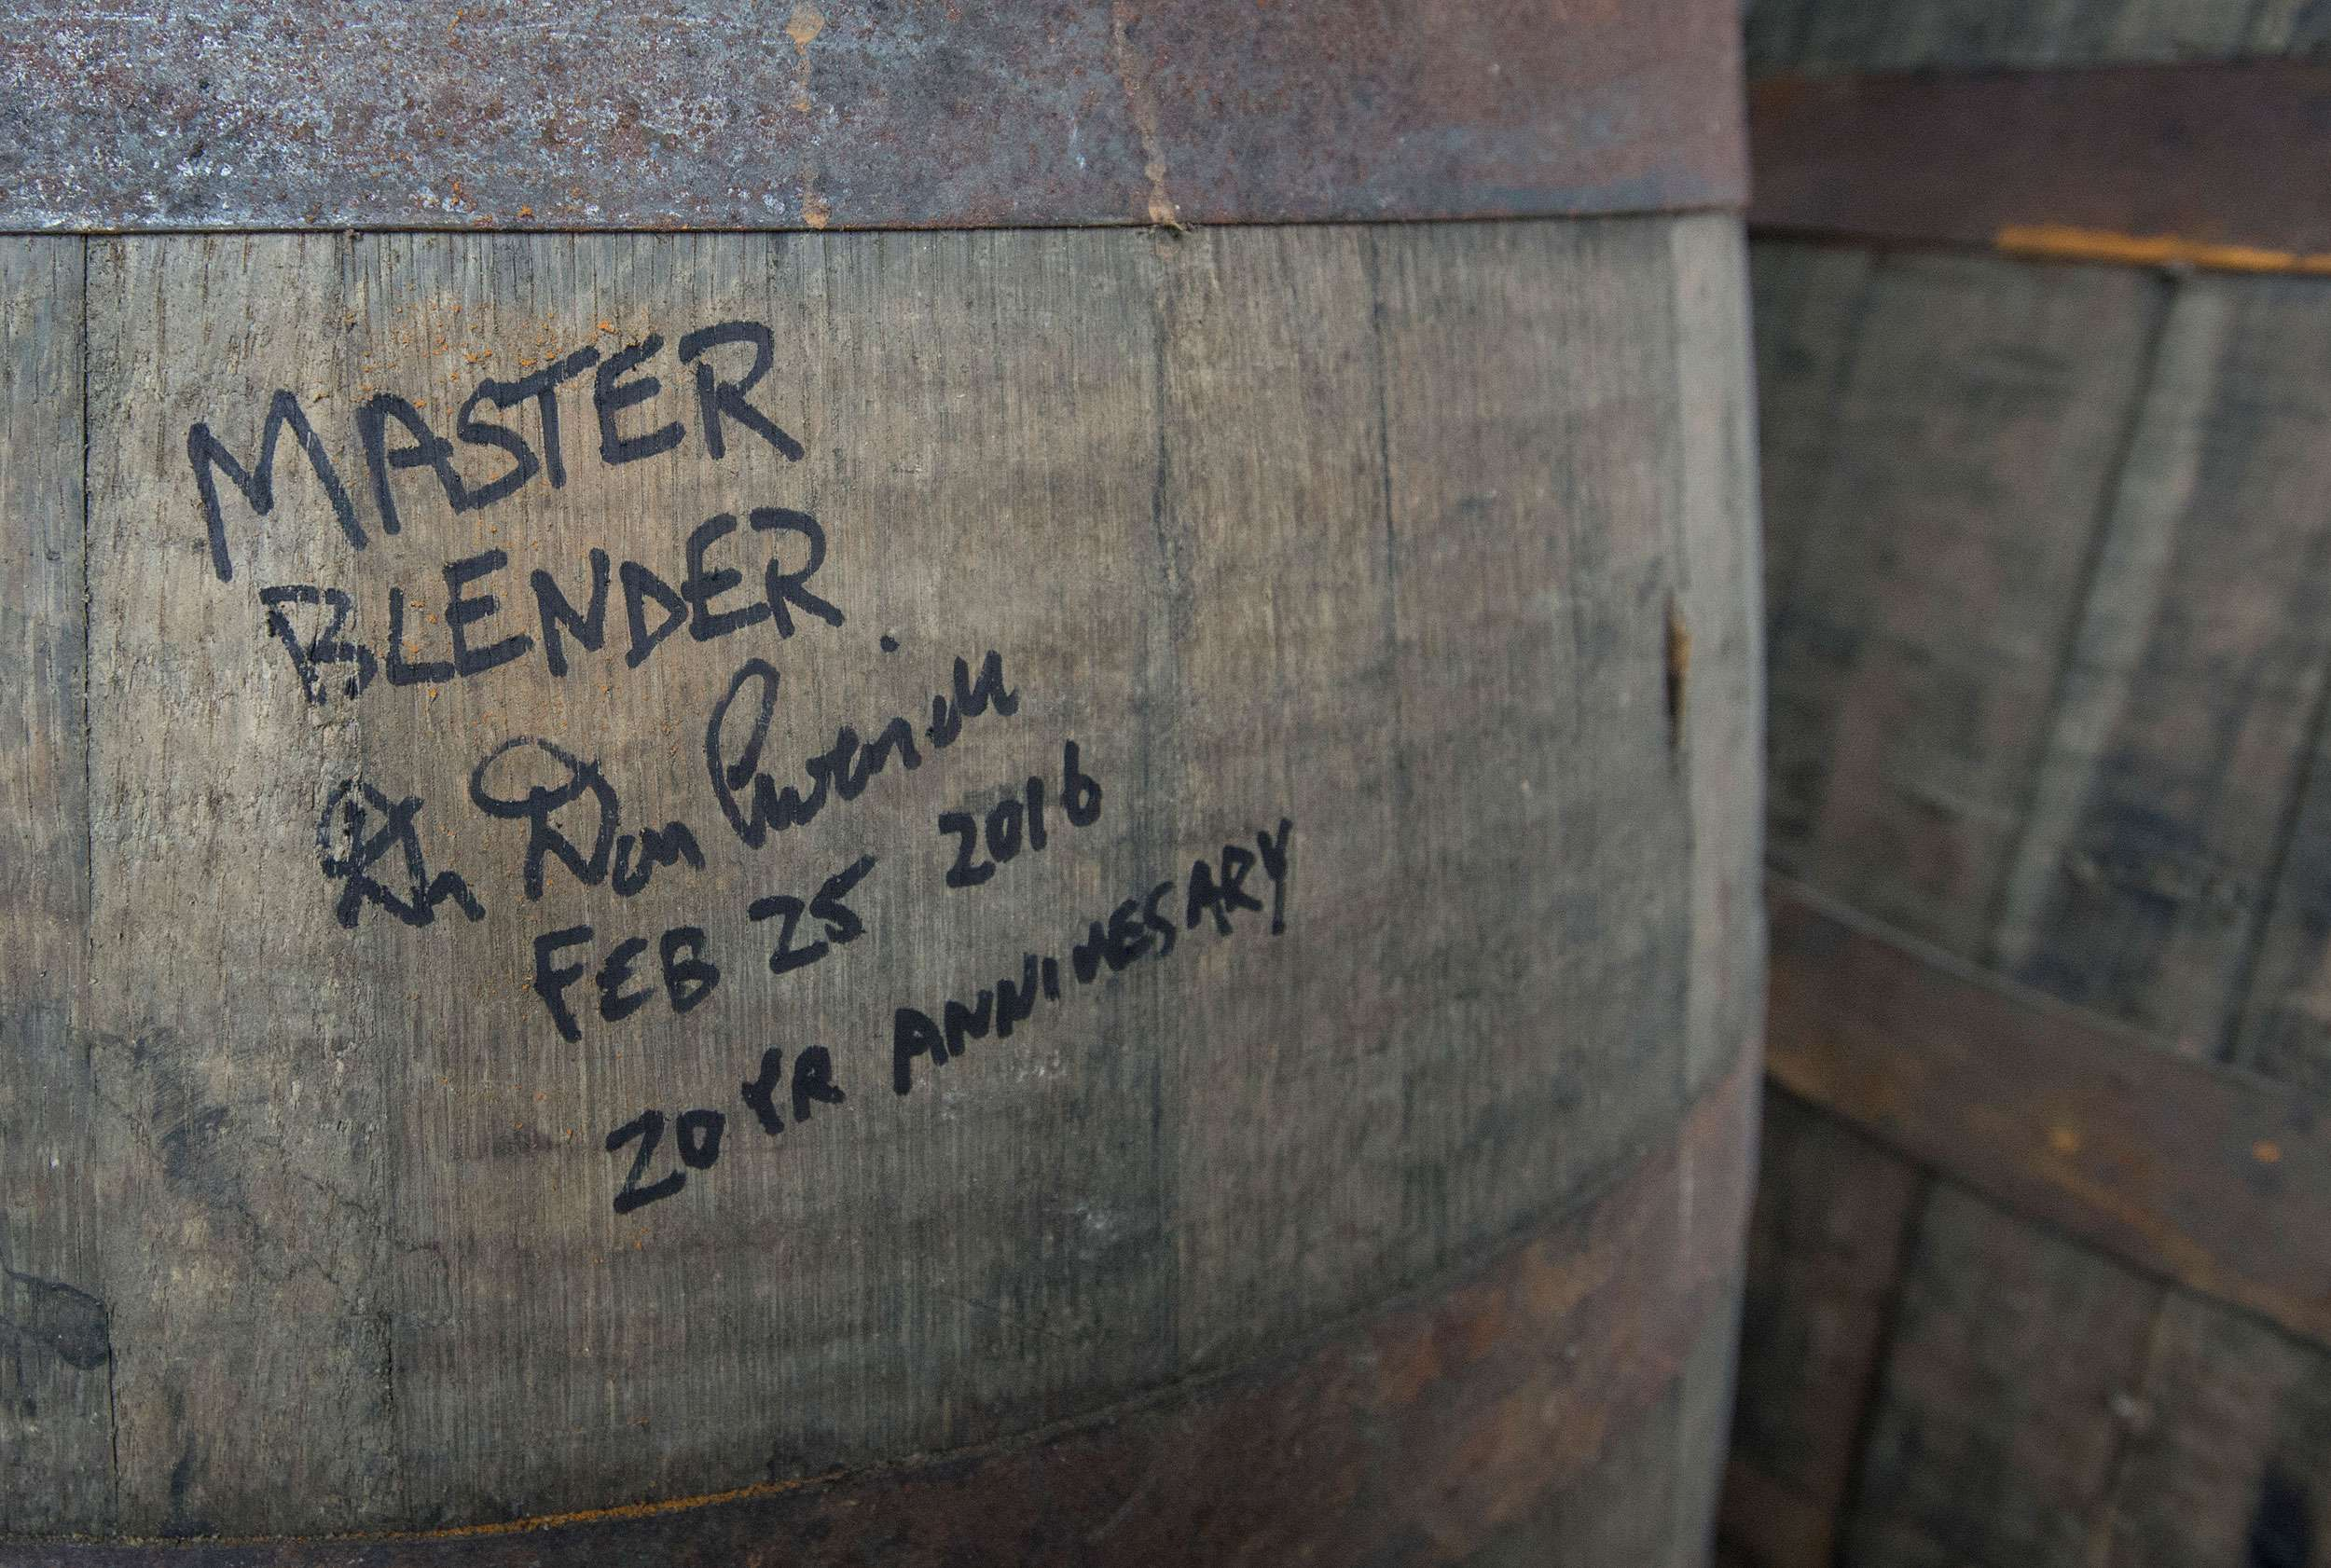 Don Livermore's signature on a whisky barrel at Hiram Walker. (Laura Pedersen/National Post)